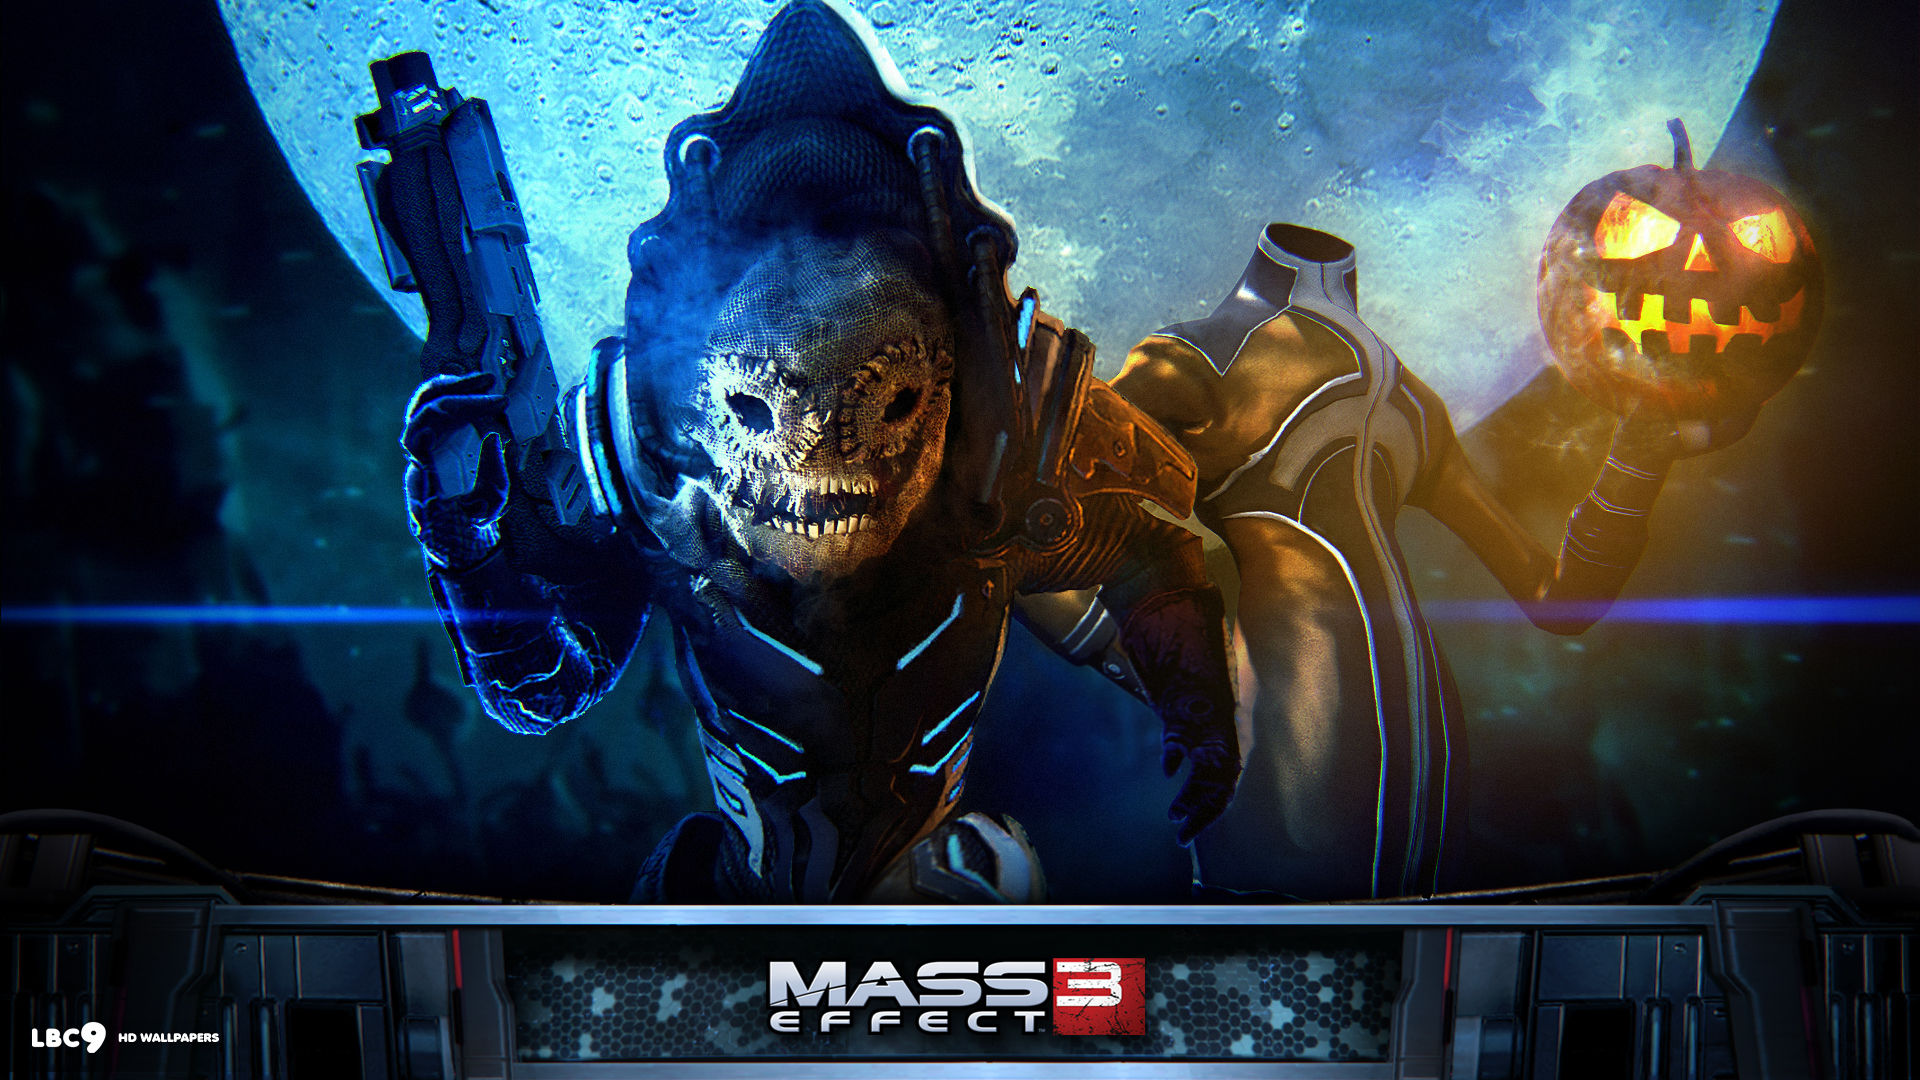 Mass-Effect-HD-I-Have-A-PC-wallpaper-wp3808071